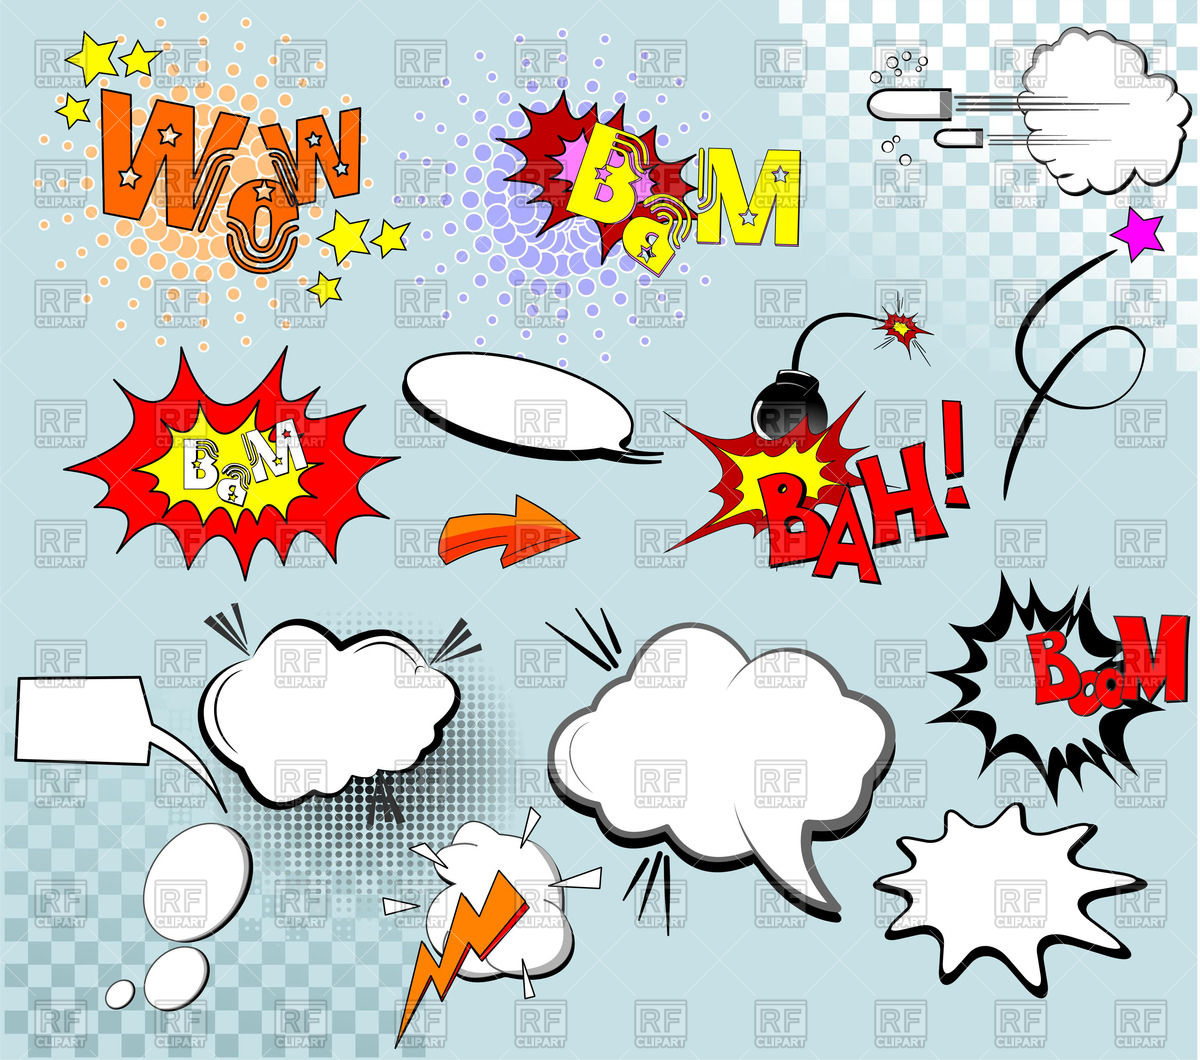 Cartoon explosions, outbreaks and splashes Vector Image #55763.